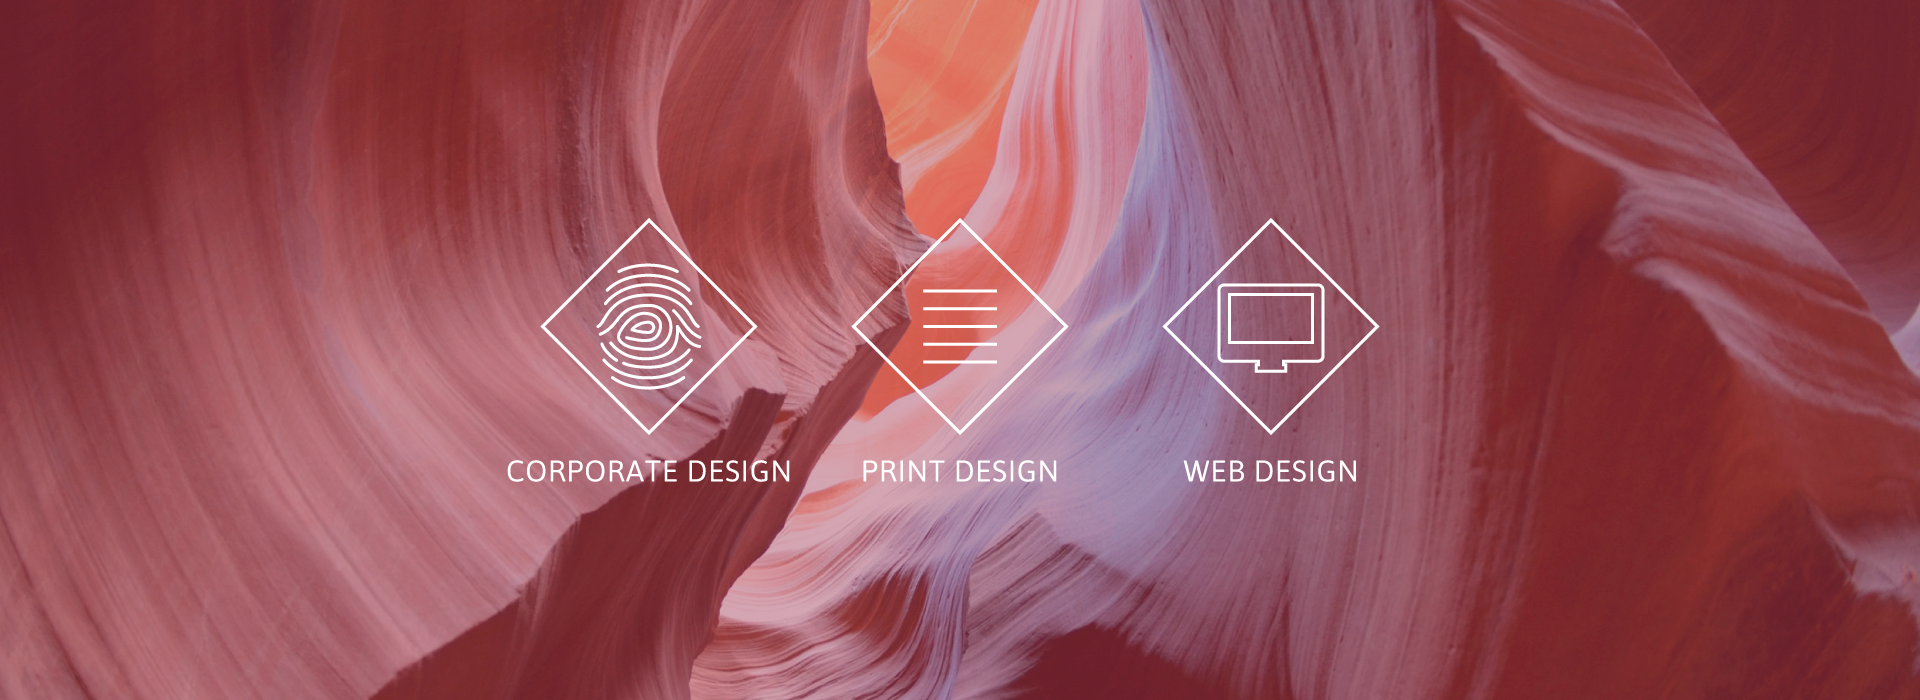 Corporate Design, Print Design, Web Design